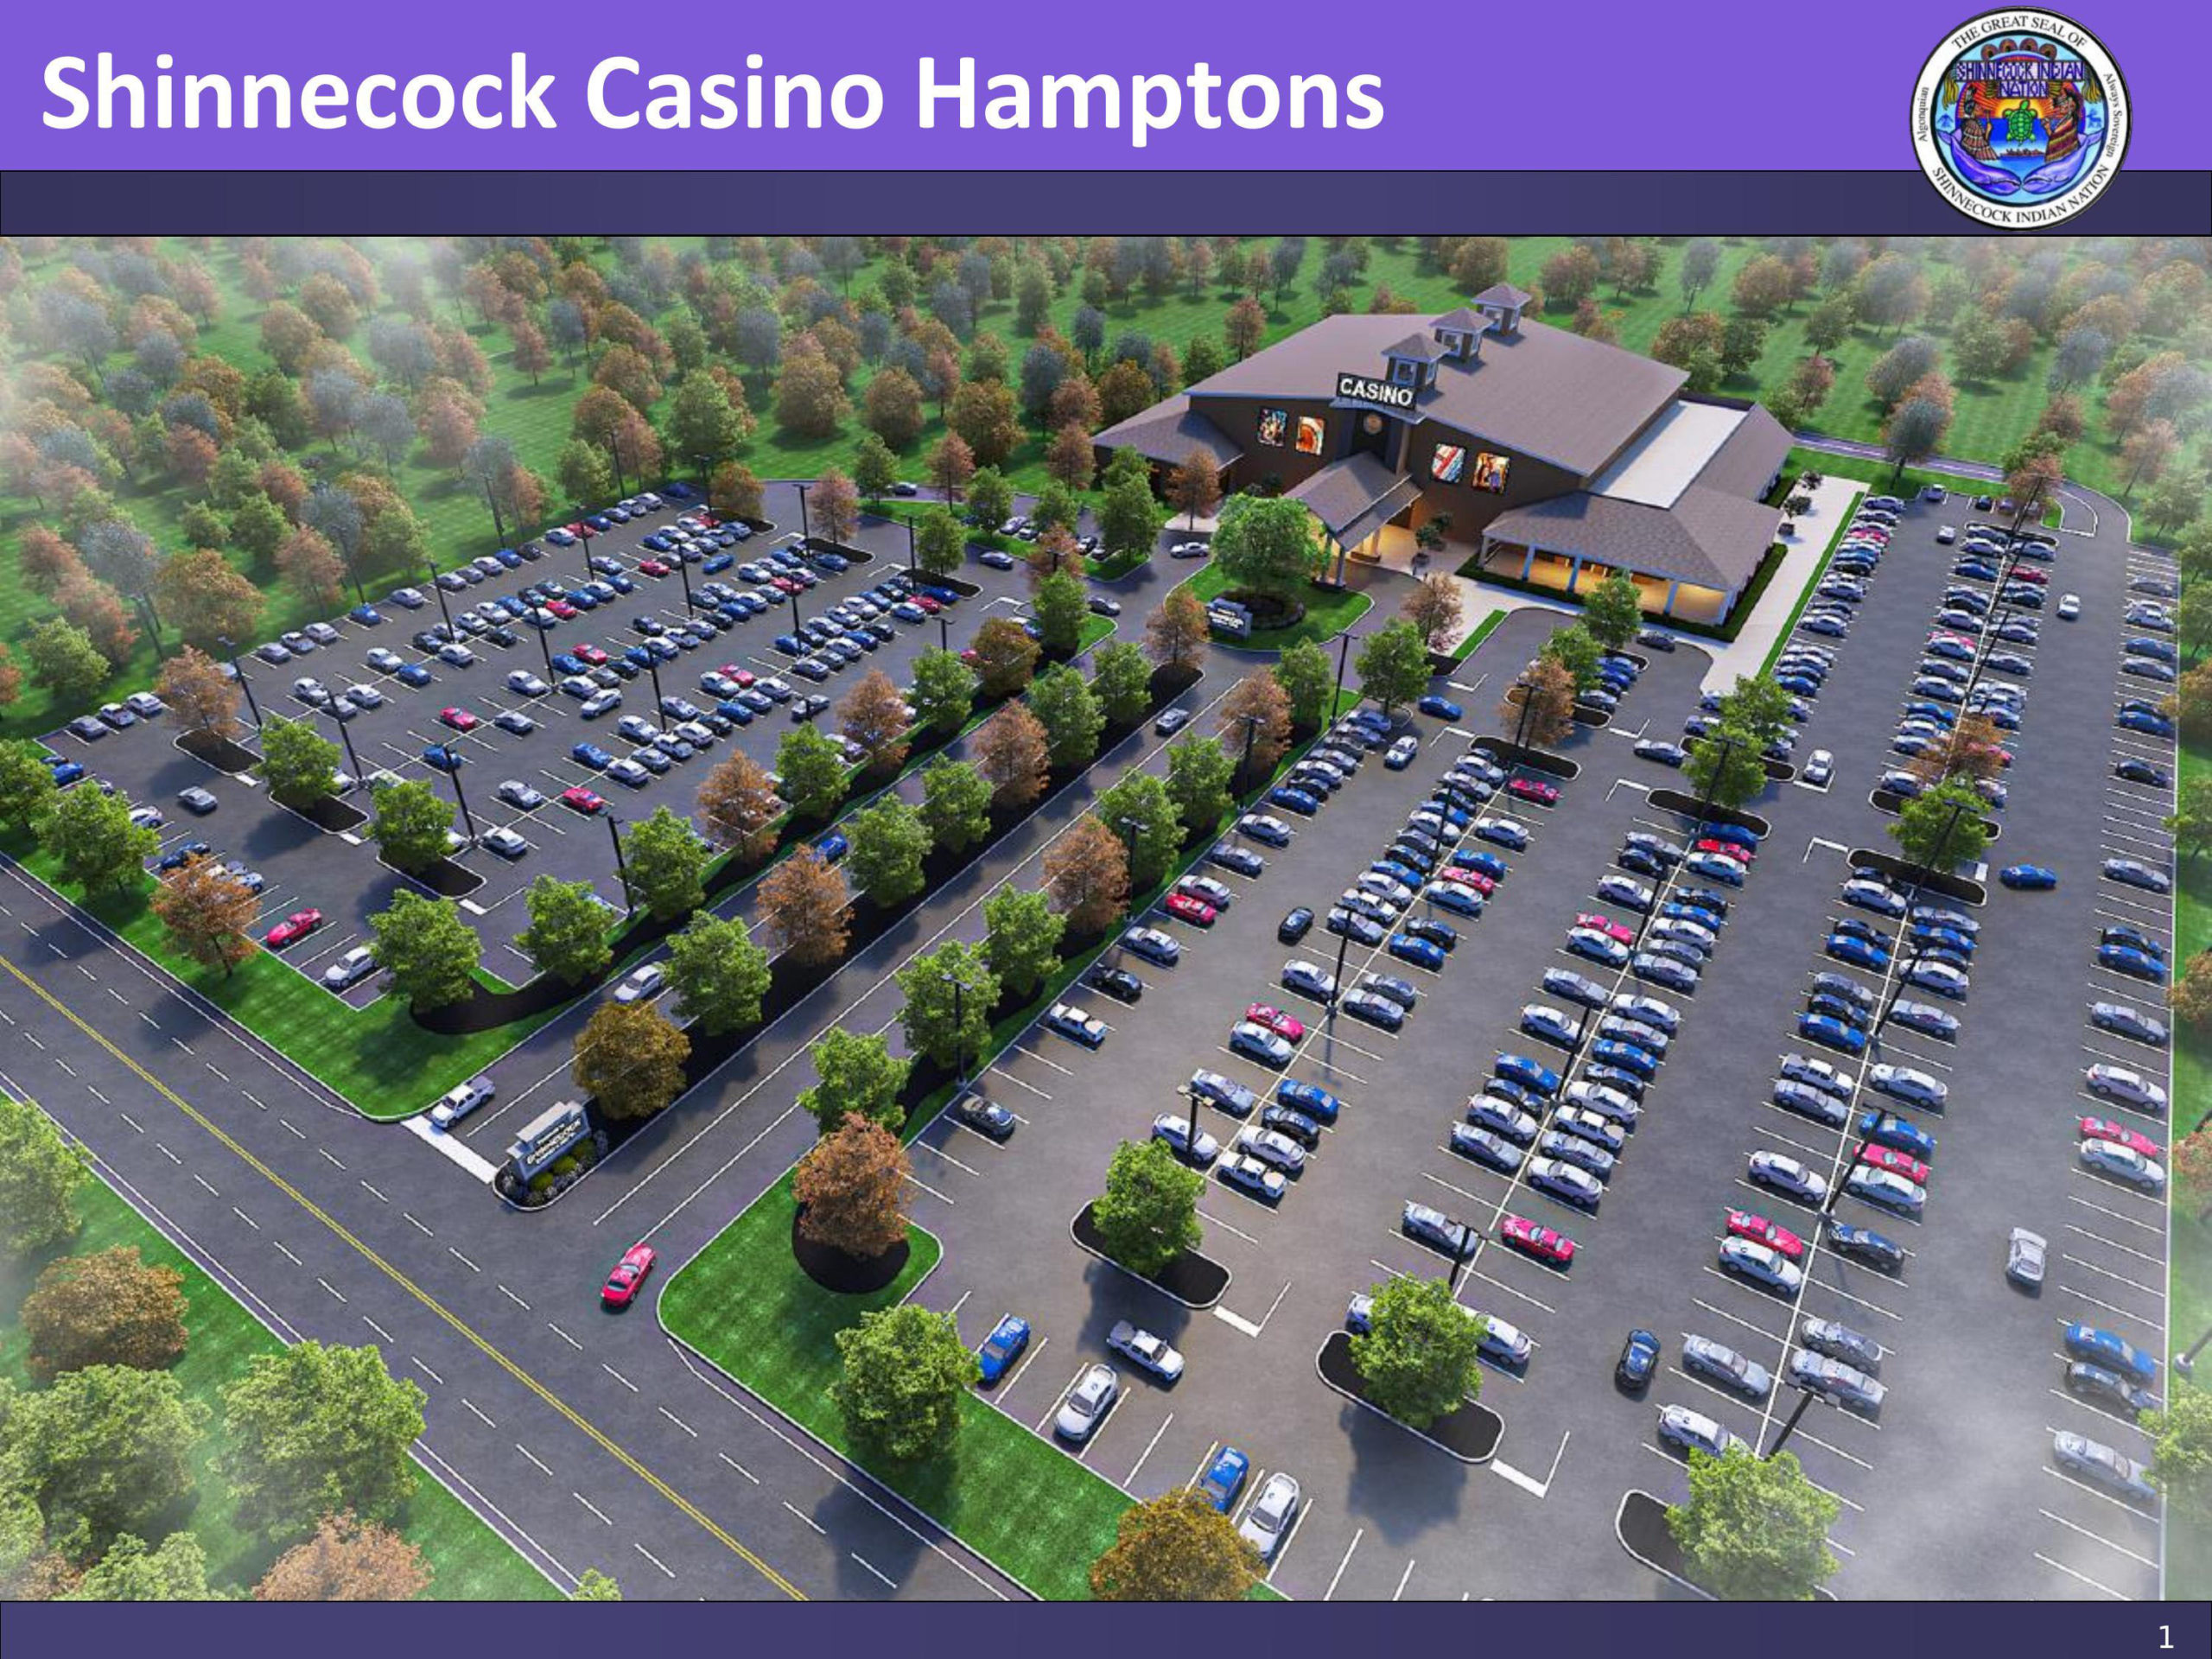 A rendering of the proposed Shinnecock Casino Hamptons. COURTESY Shinnecock Indian NATION